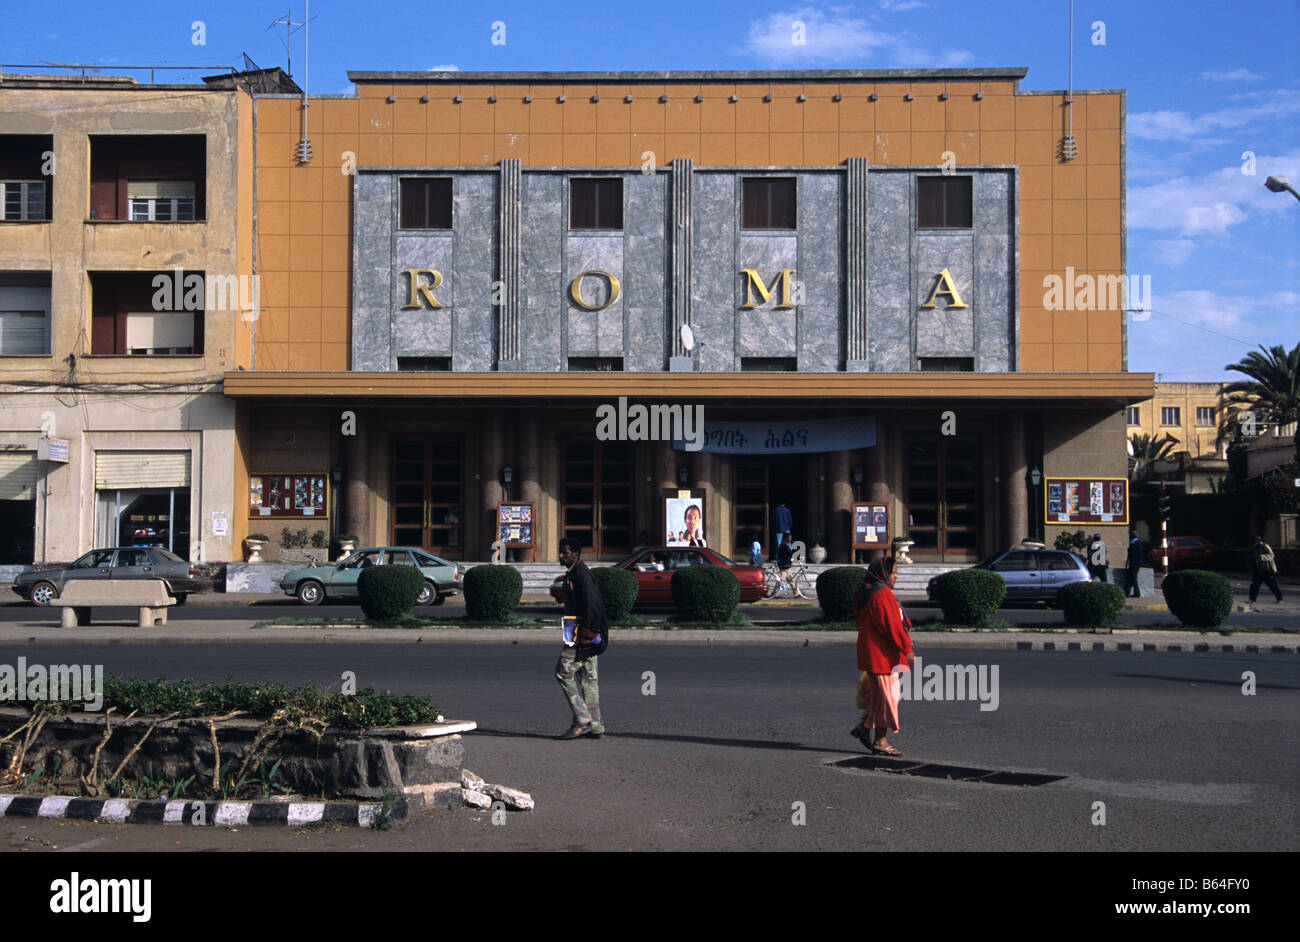 The 'Roma' Art Deco Cinema (1937), Asmara, Eritrea - Stock Image